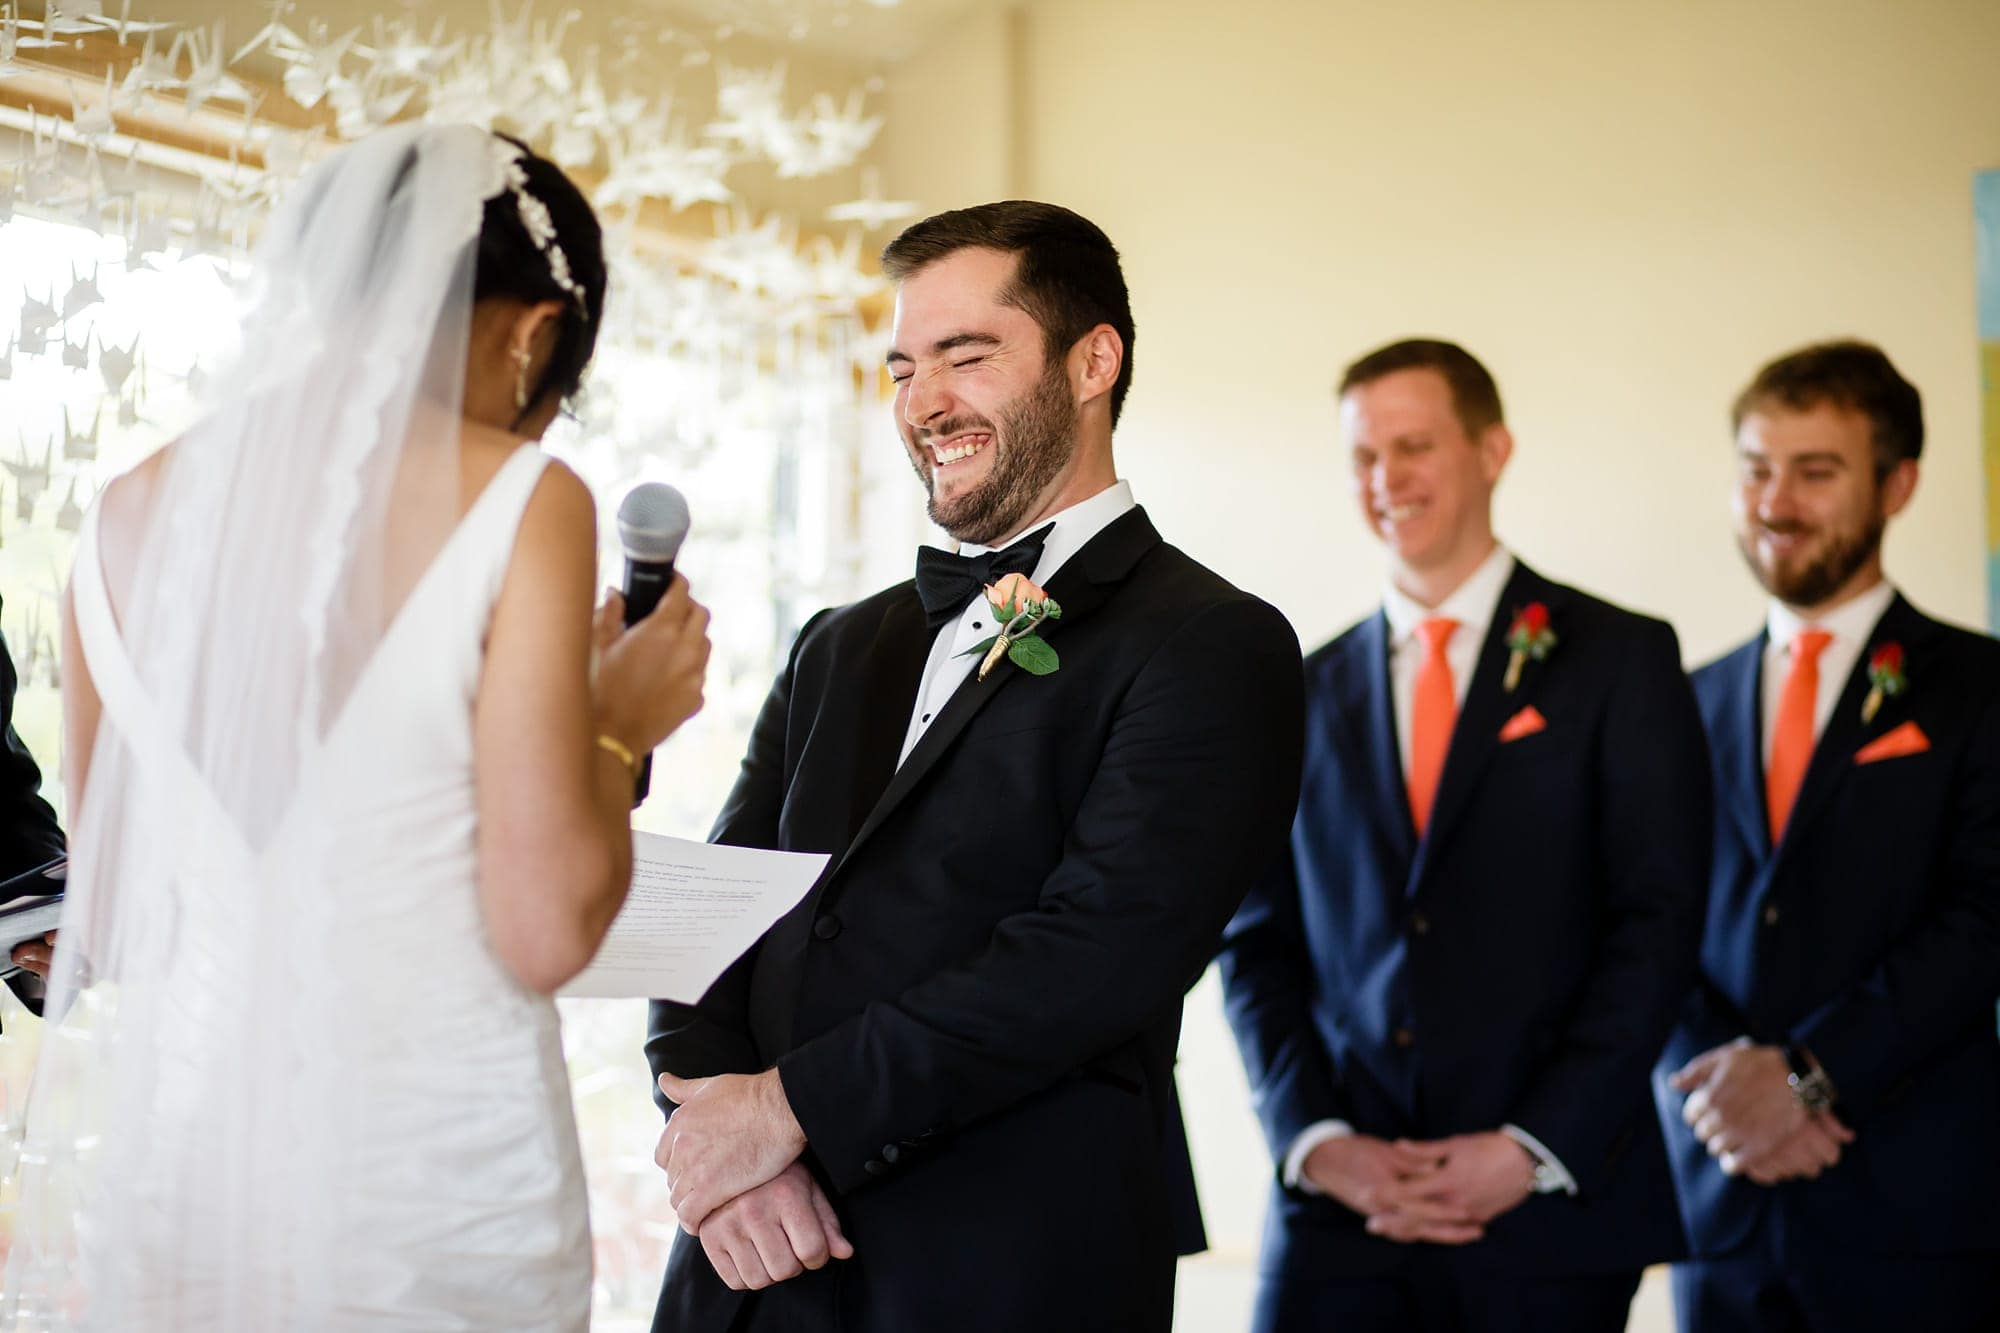 Bryan laughs during Megan's vows